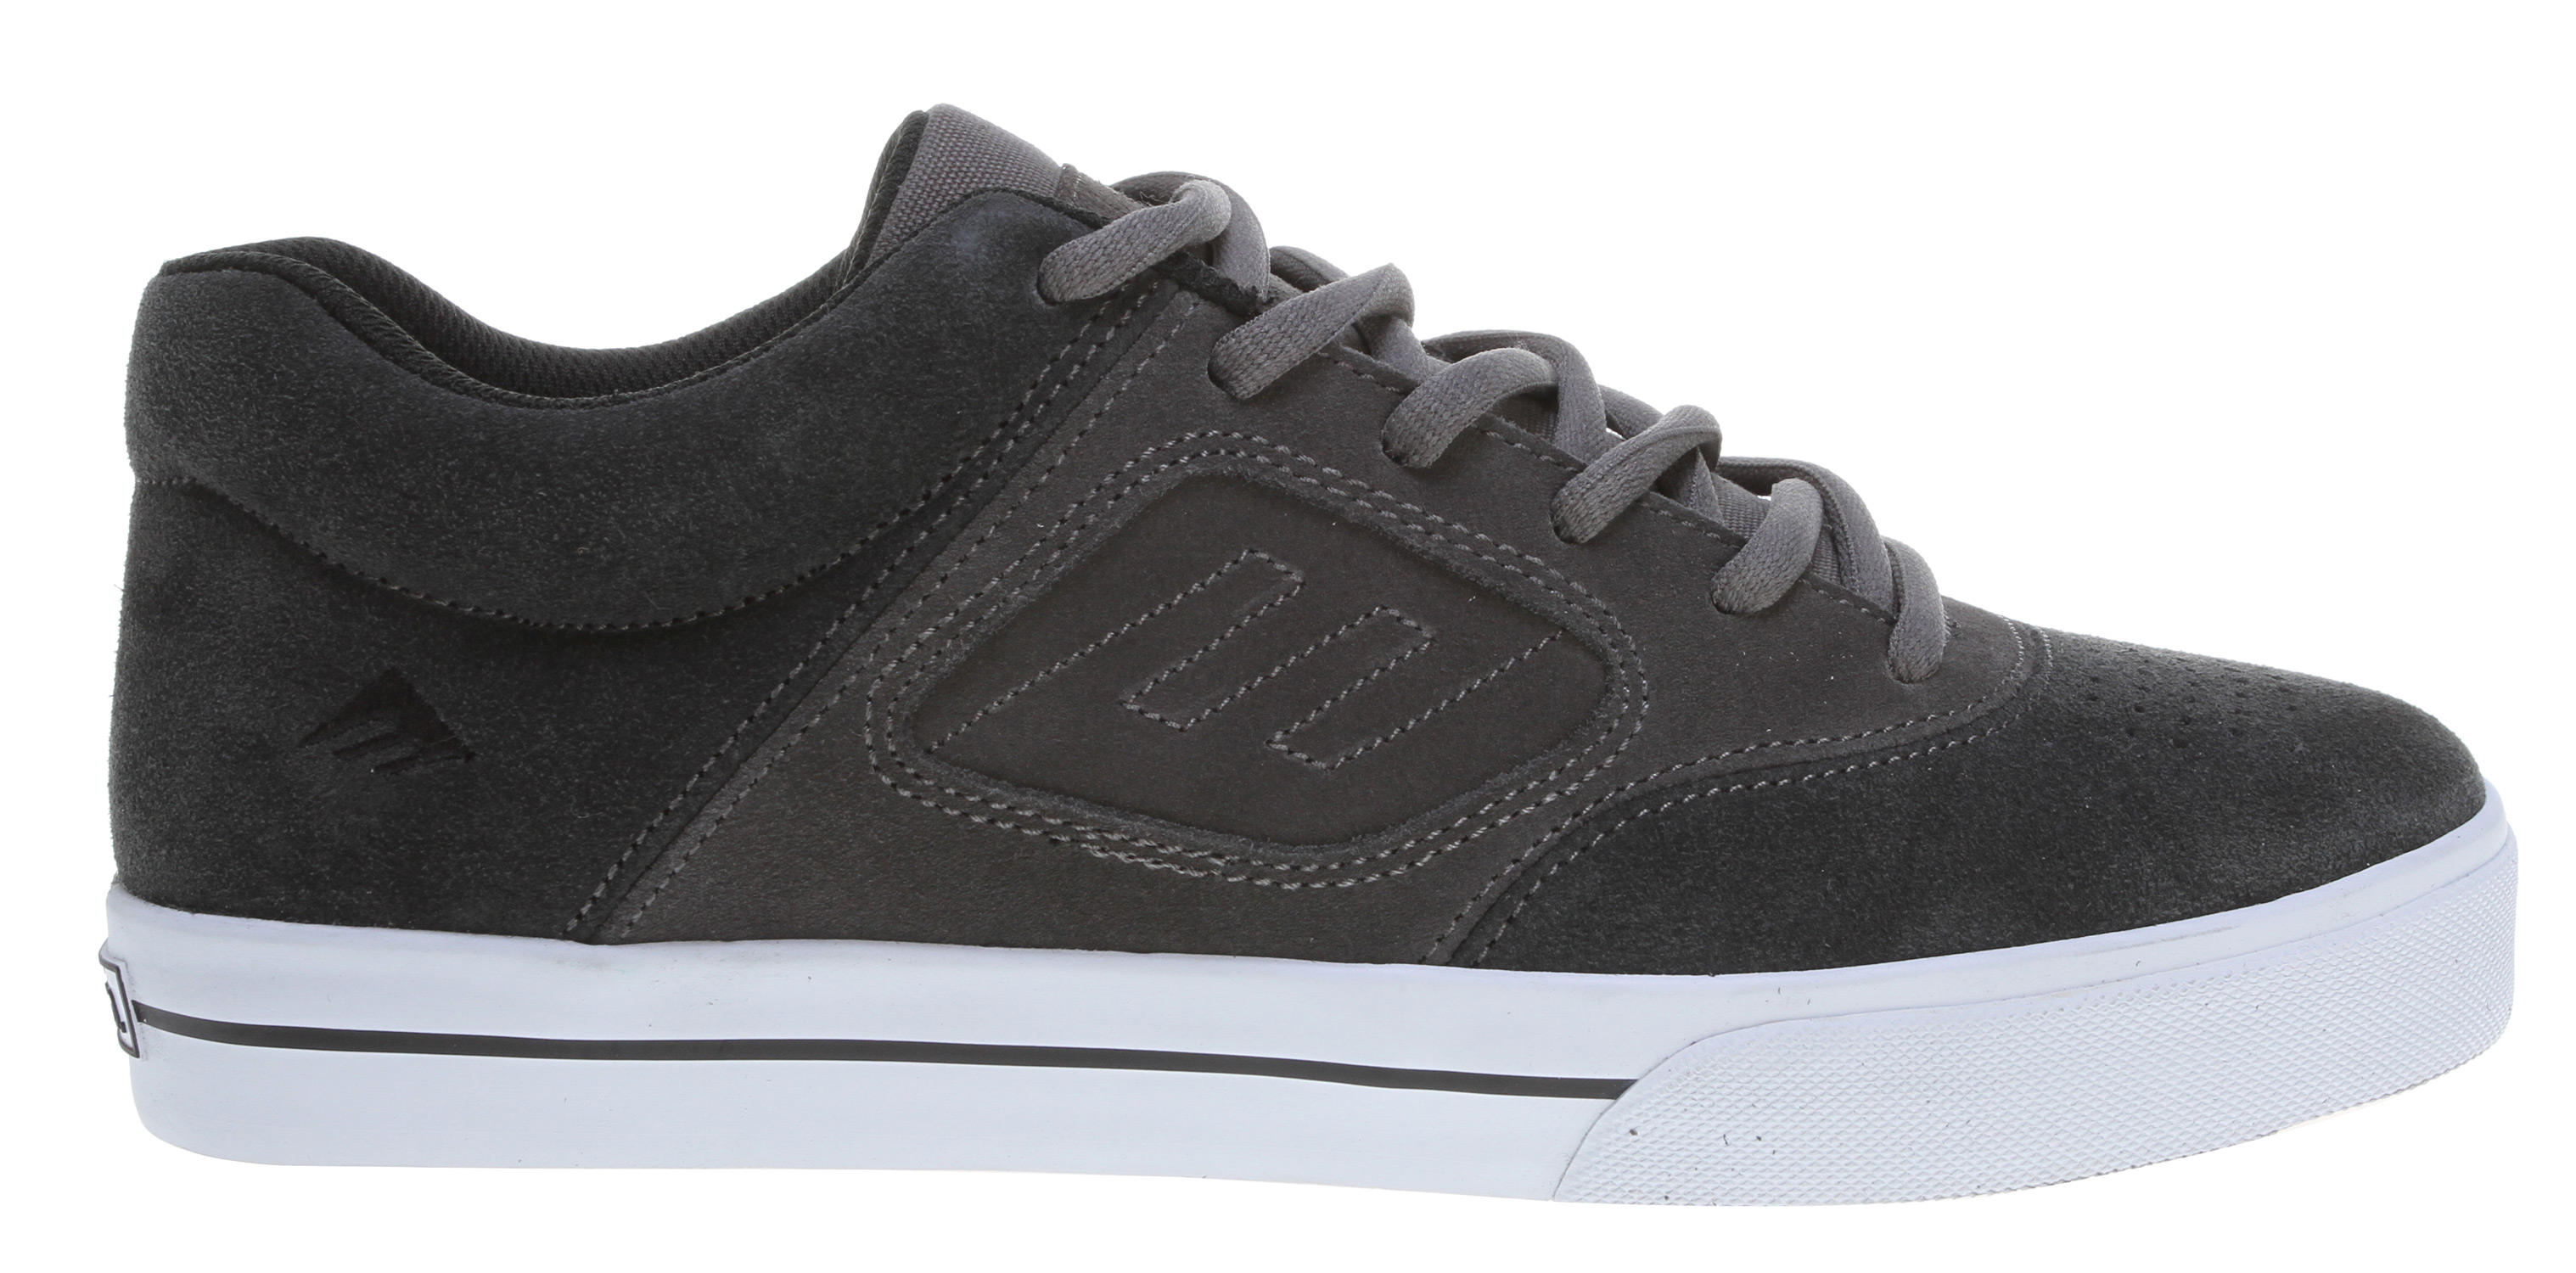 Skateboard Key Features of the Emerica Reynolds 3 Skate Shoes: Designed by Andrew Reynolds Suede and canvas uppers STI Foam Pro 1 footbed - $44.95